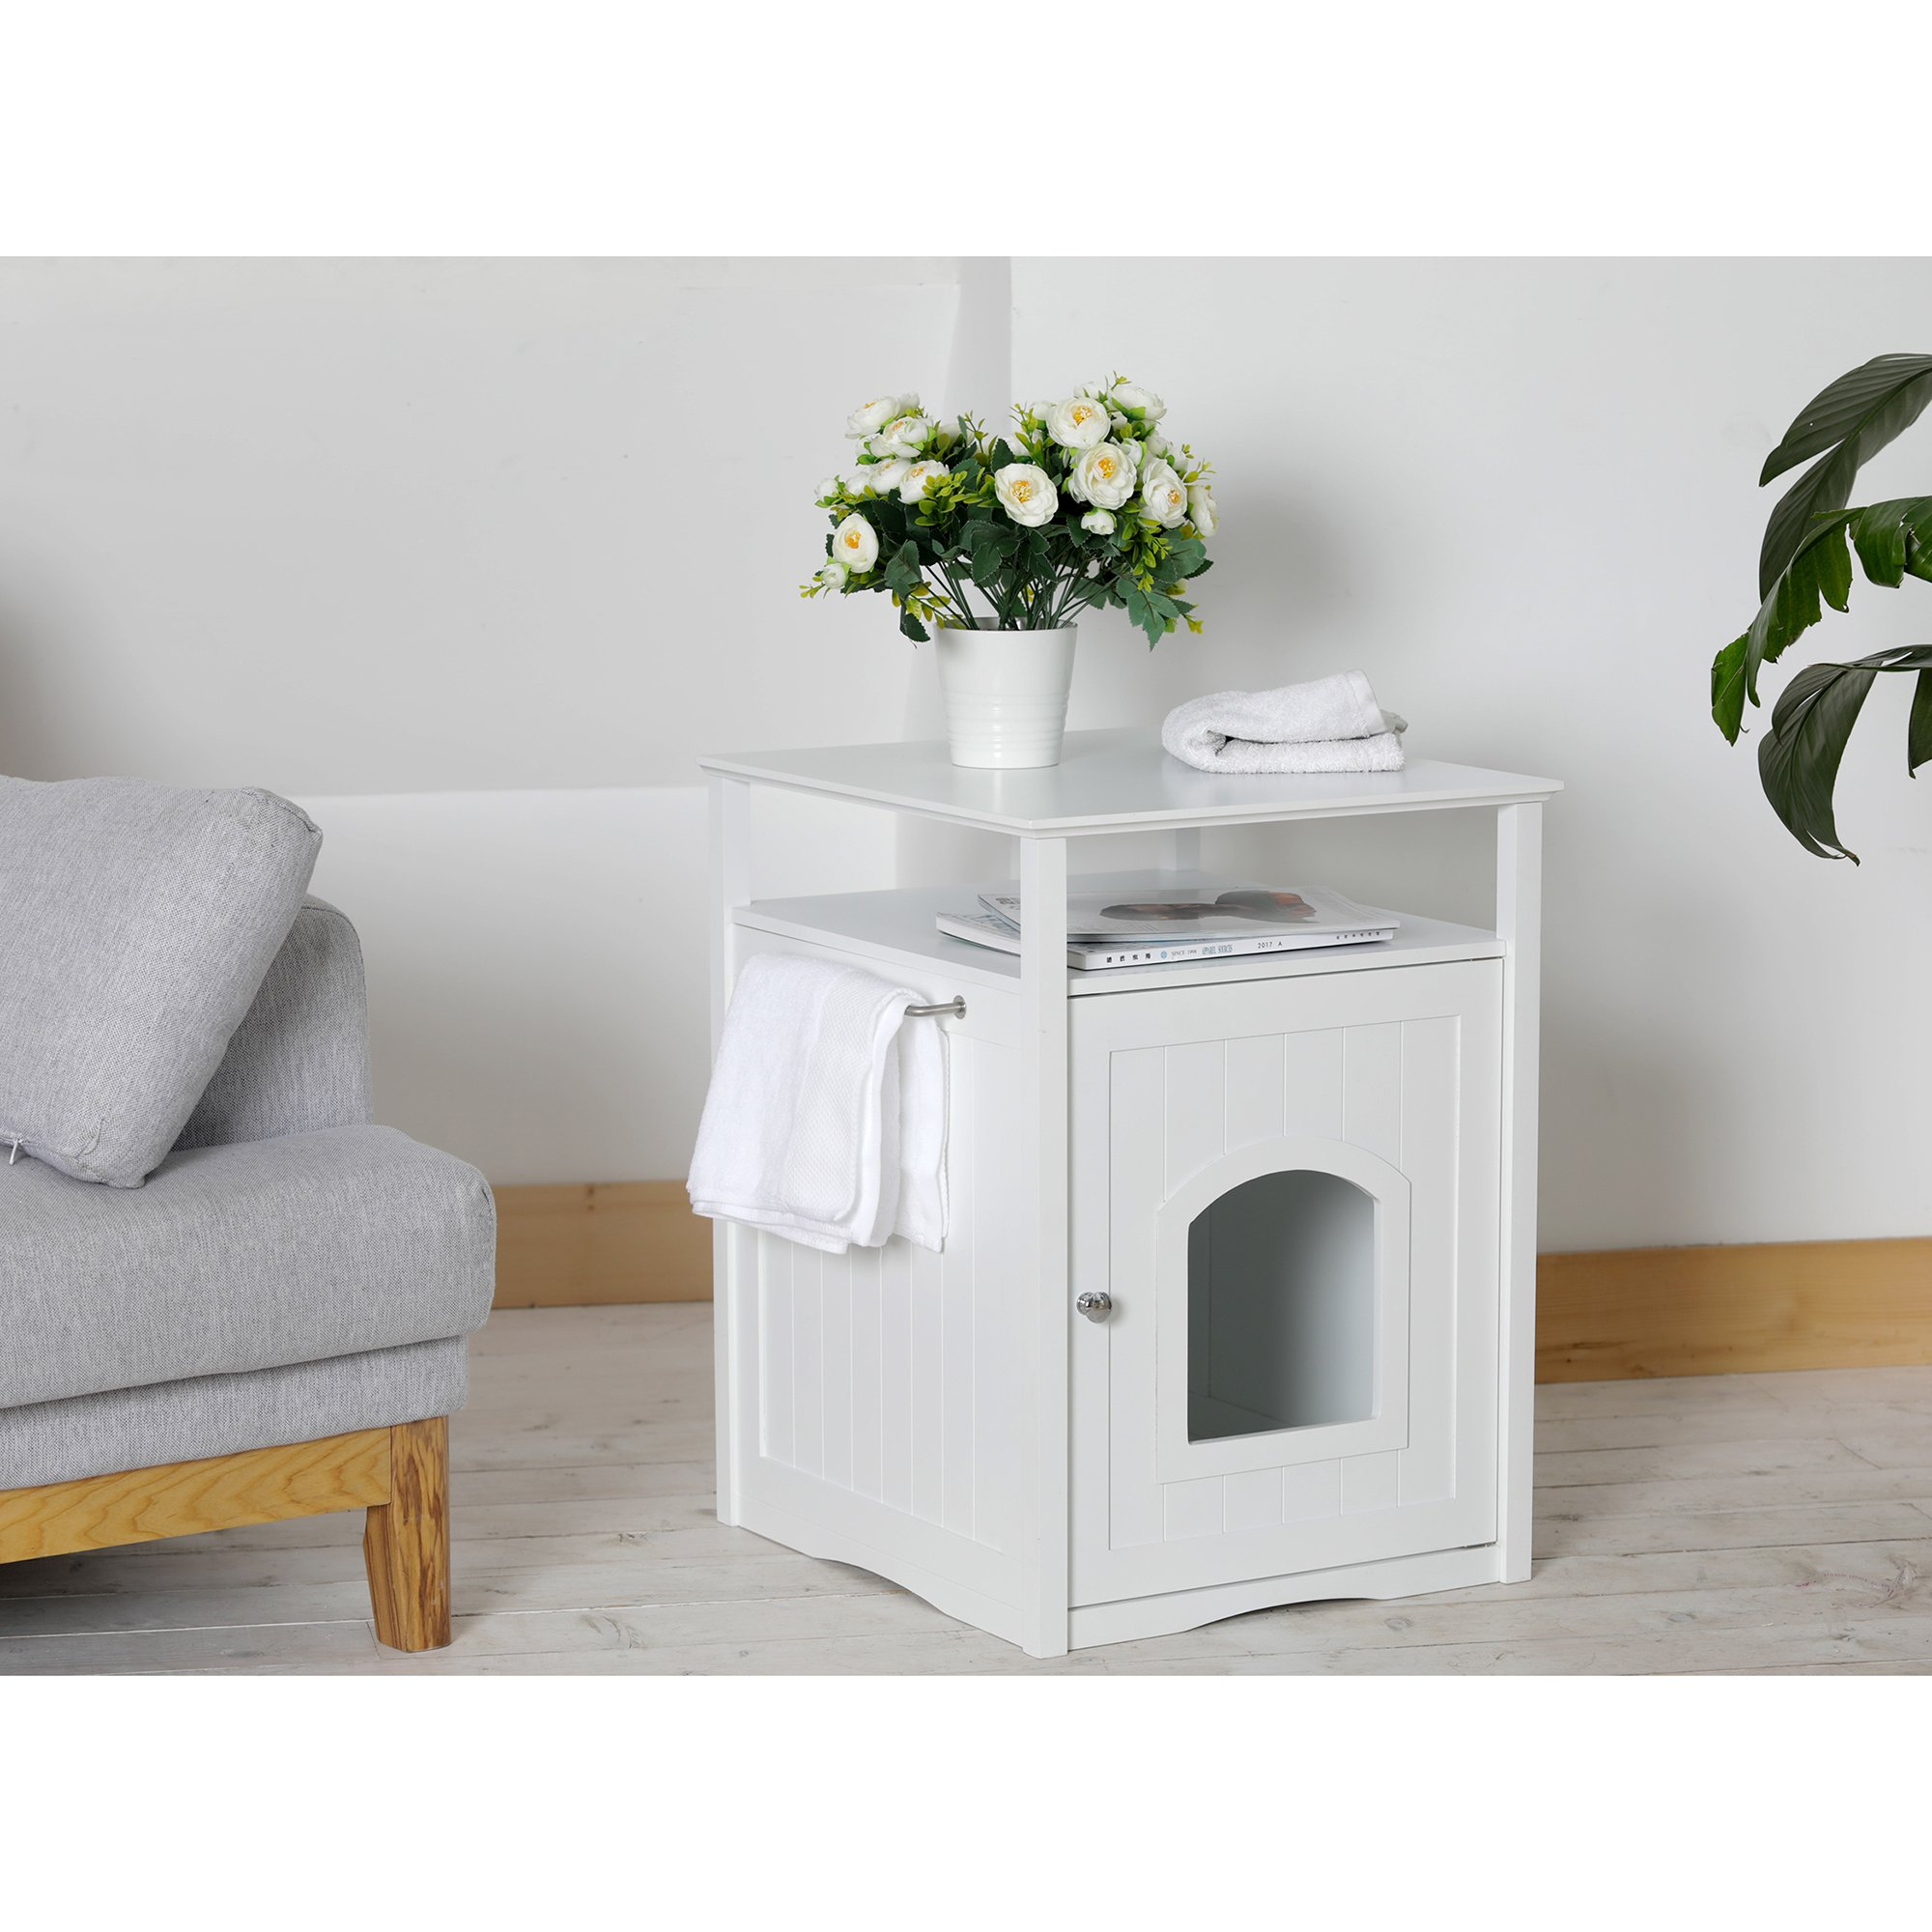 Merry Products Cat Washroom Night Stand U0026 Pet House In White